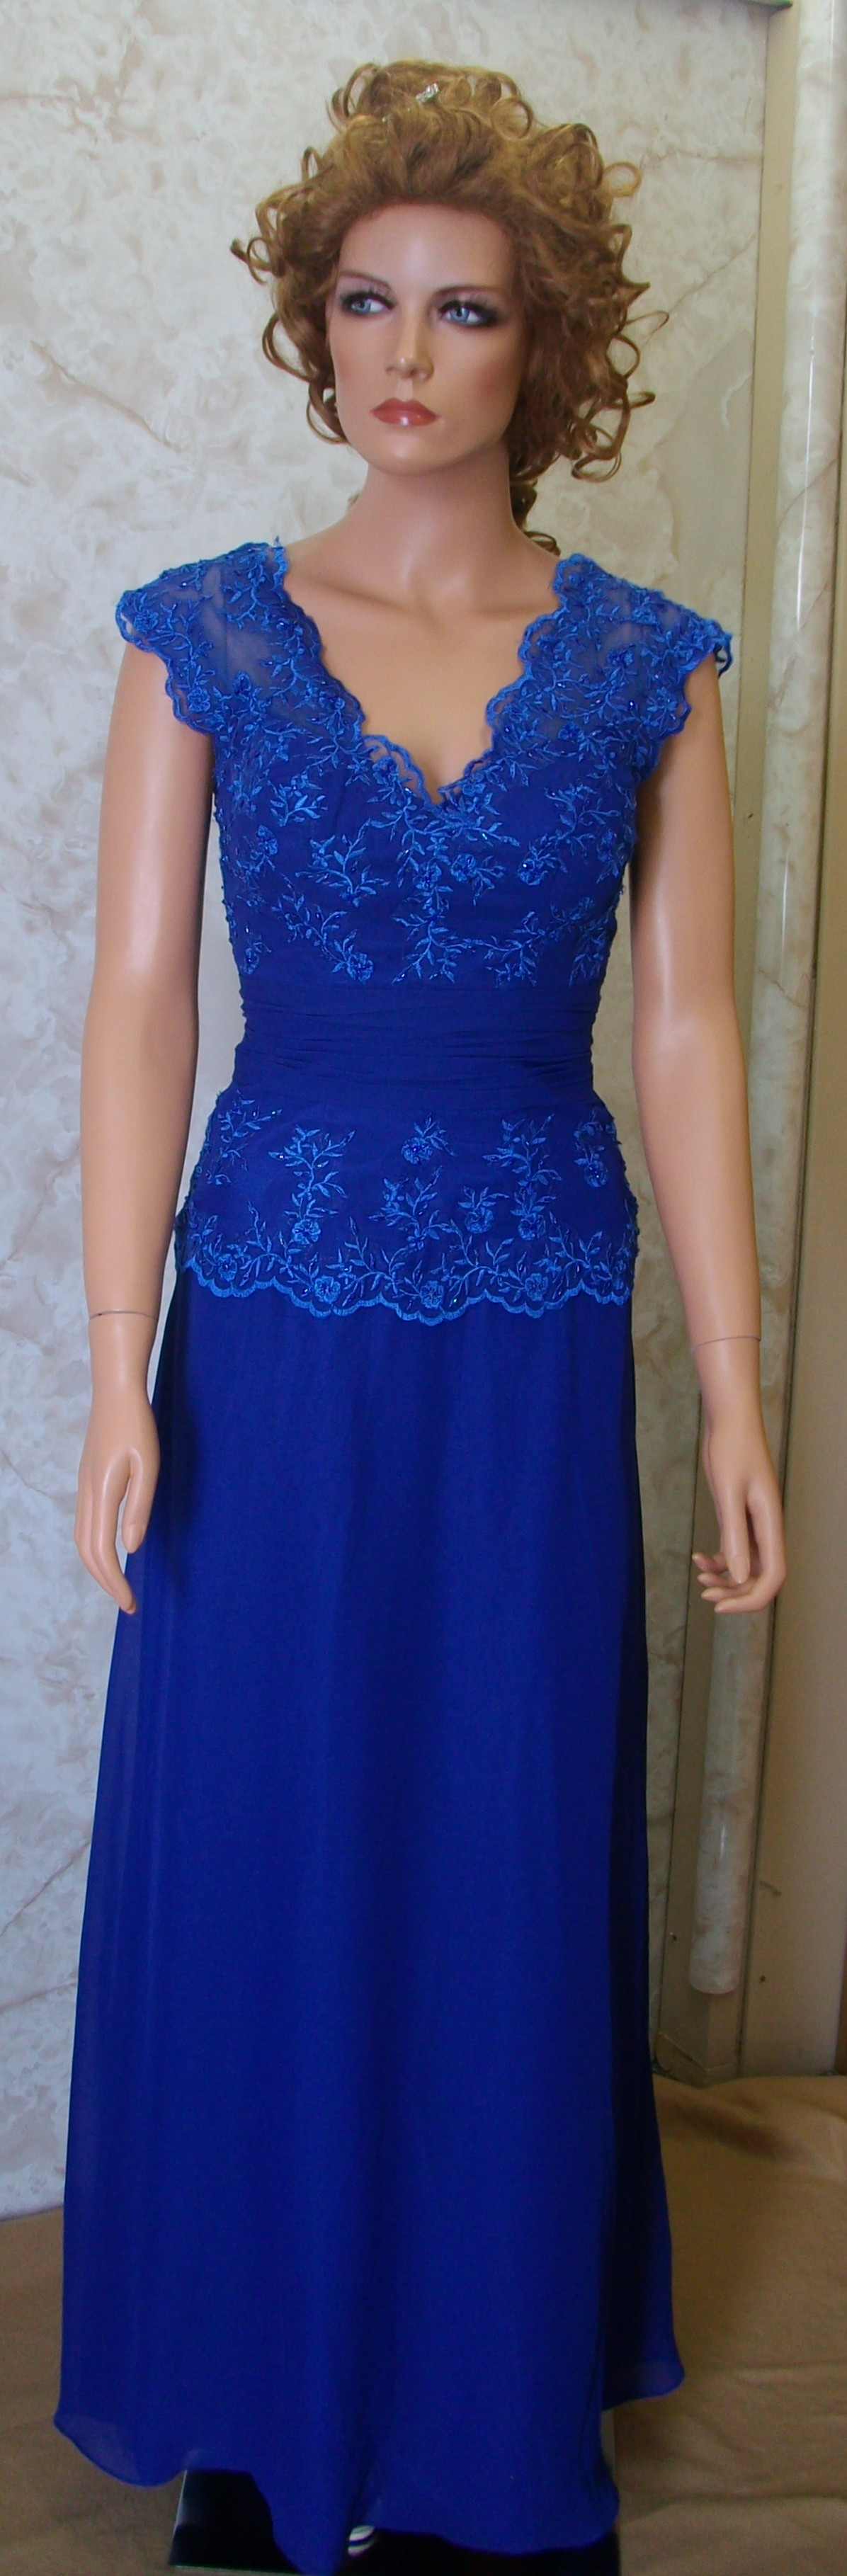 blue mother of the bride dress $110